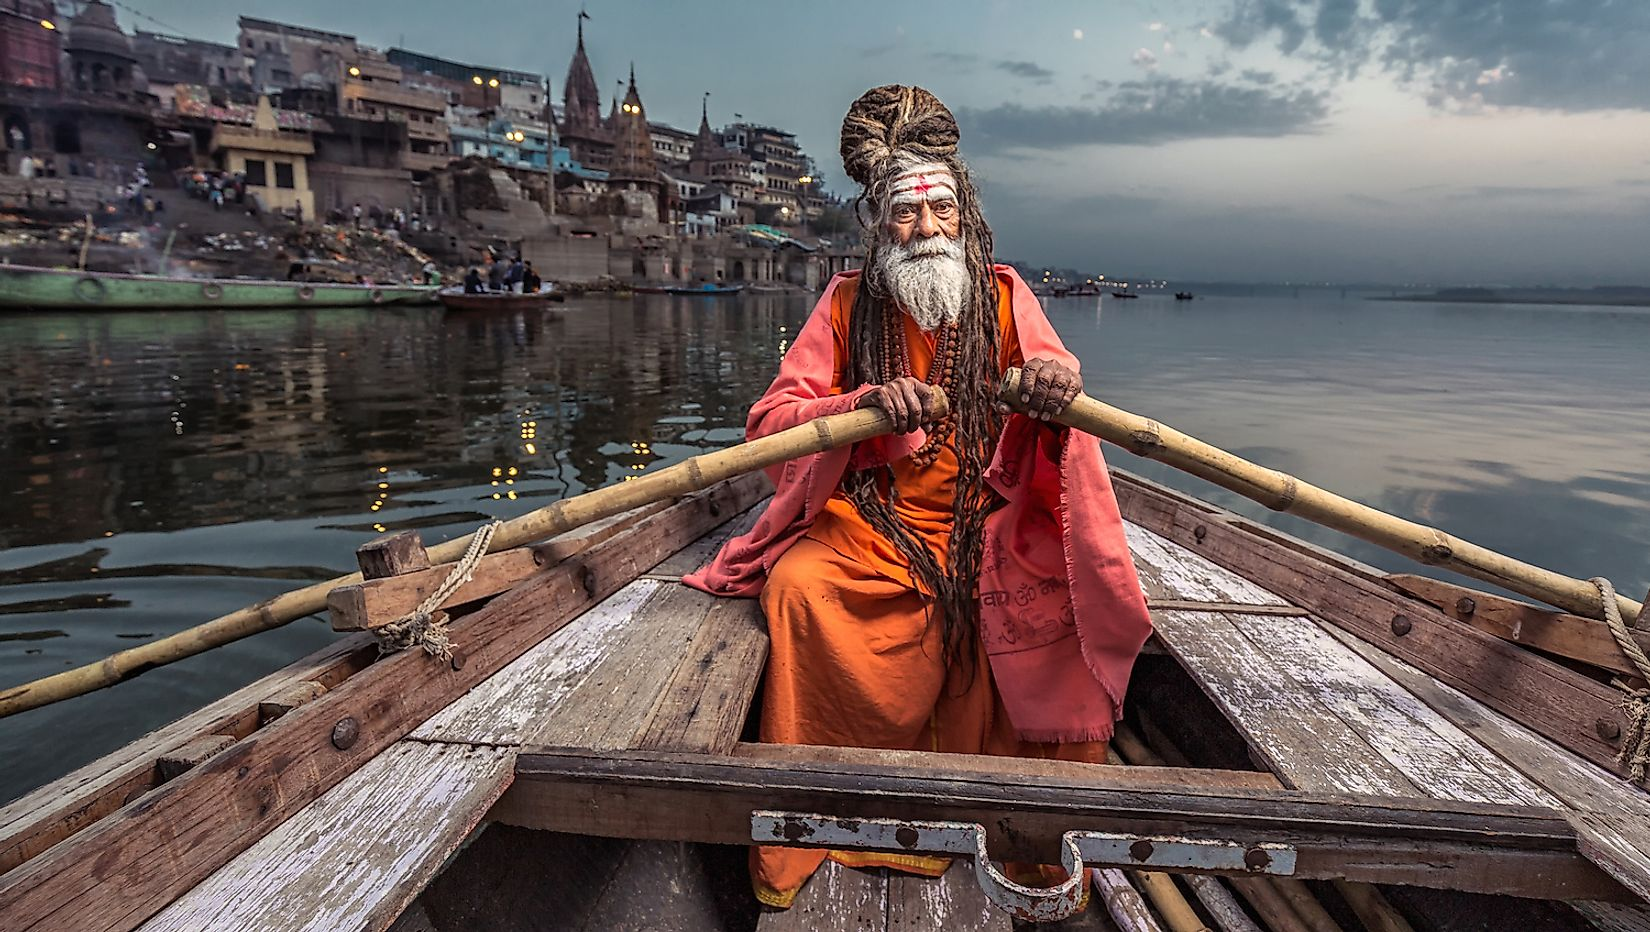 Portrait of a Hindu ascetic in India. Image credit: Ruslan Kalnitsky/Shutterstock.com